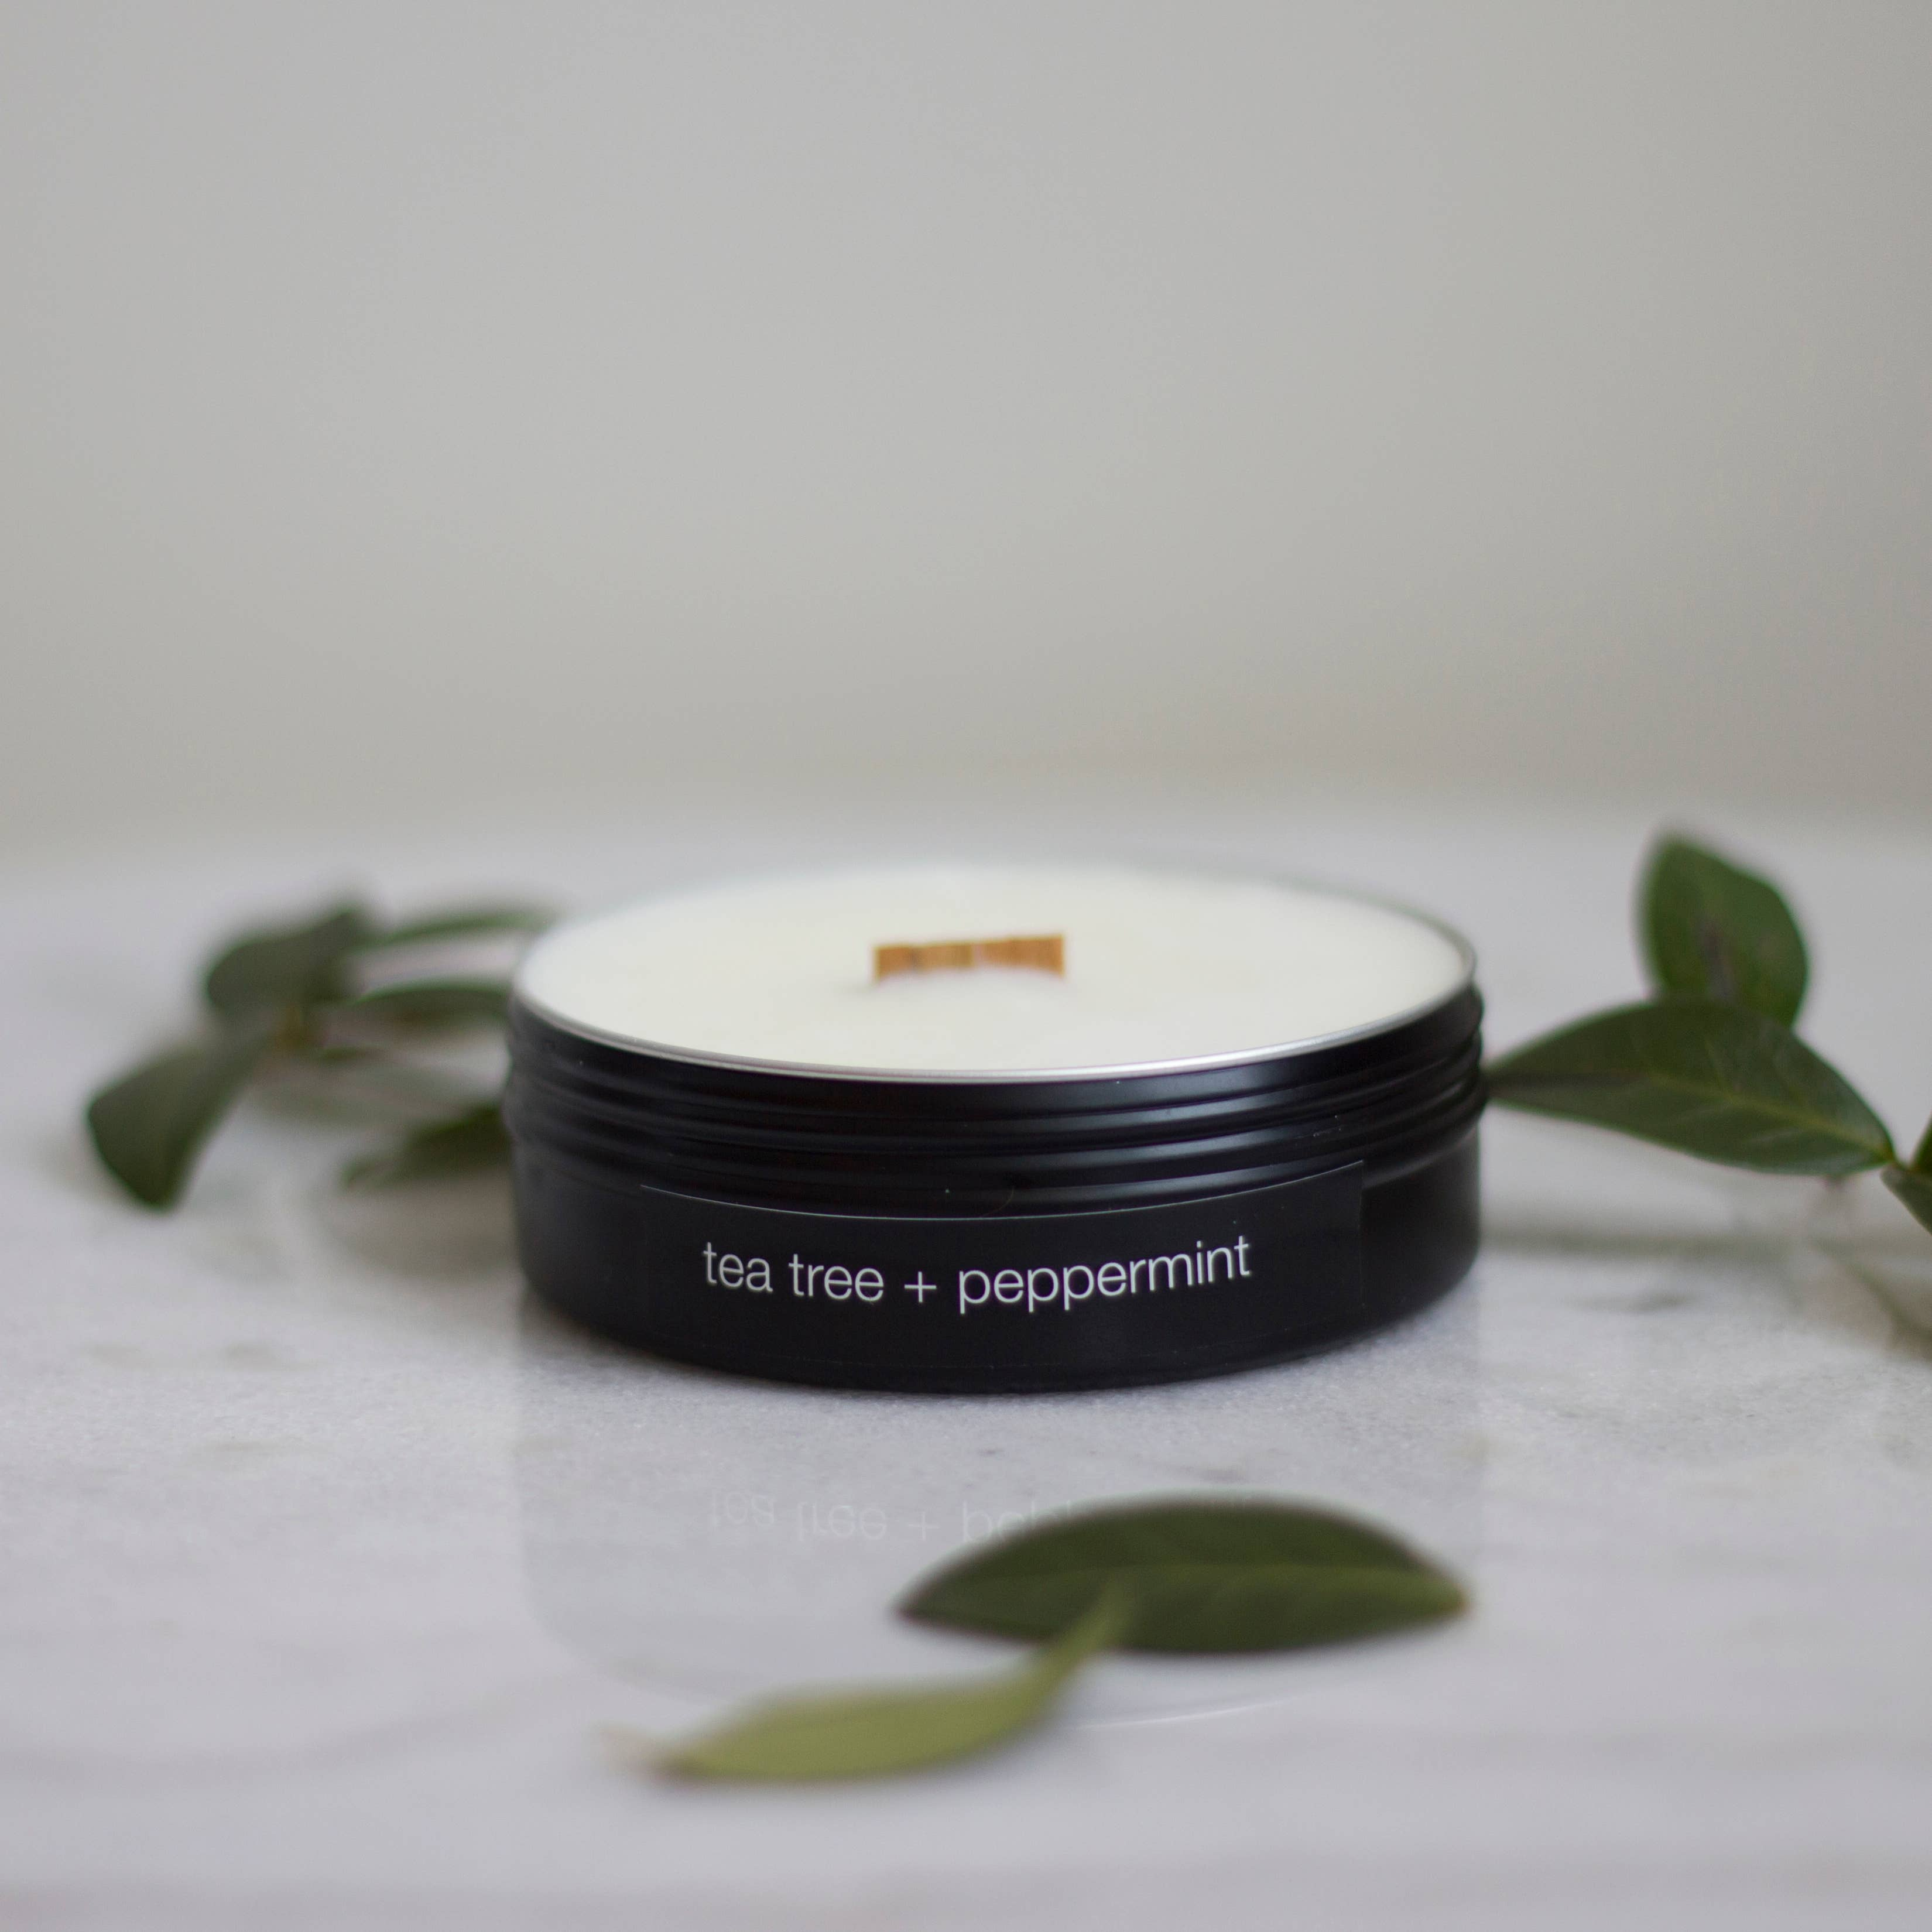 Tea Tree + Peppermint Travel Candle by Sable Candle Co.